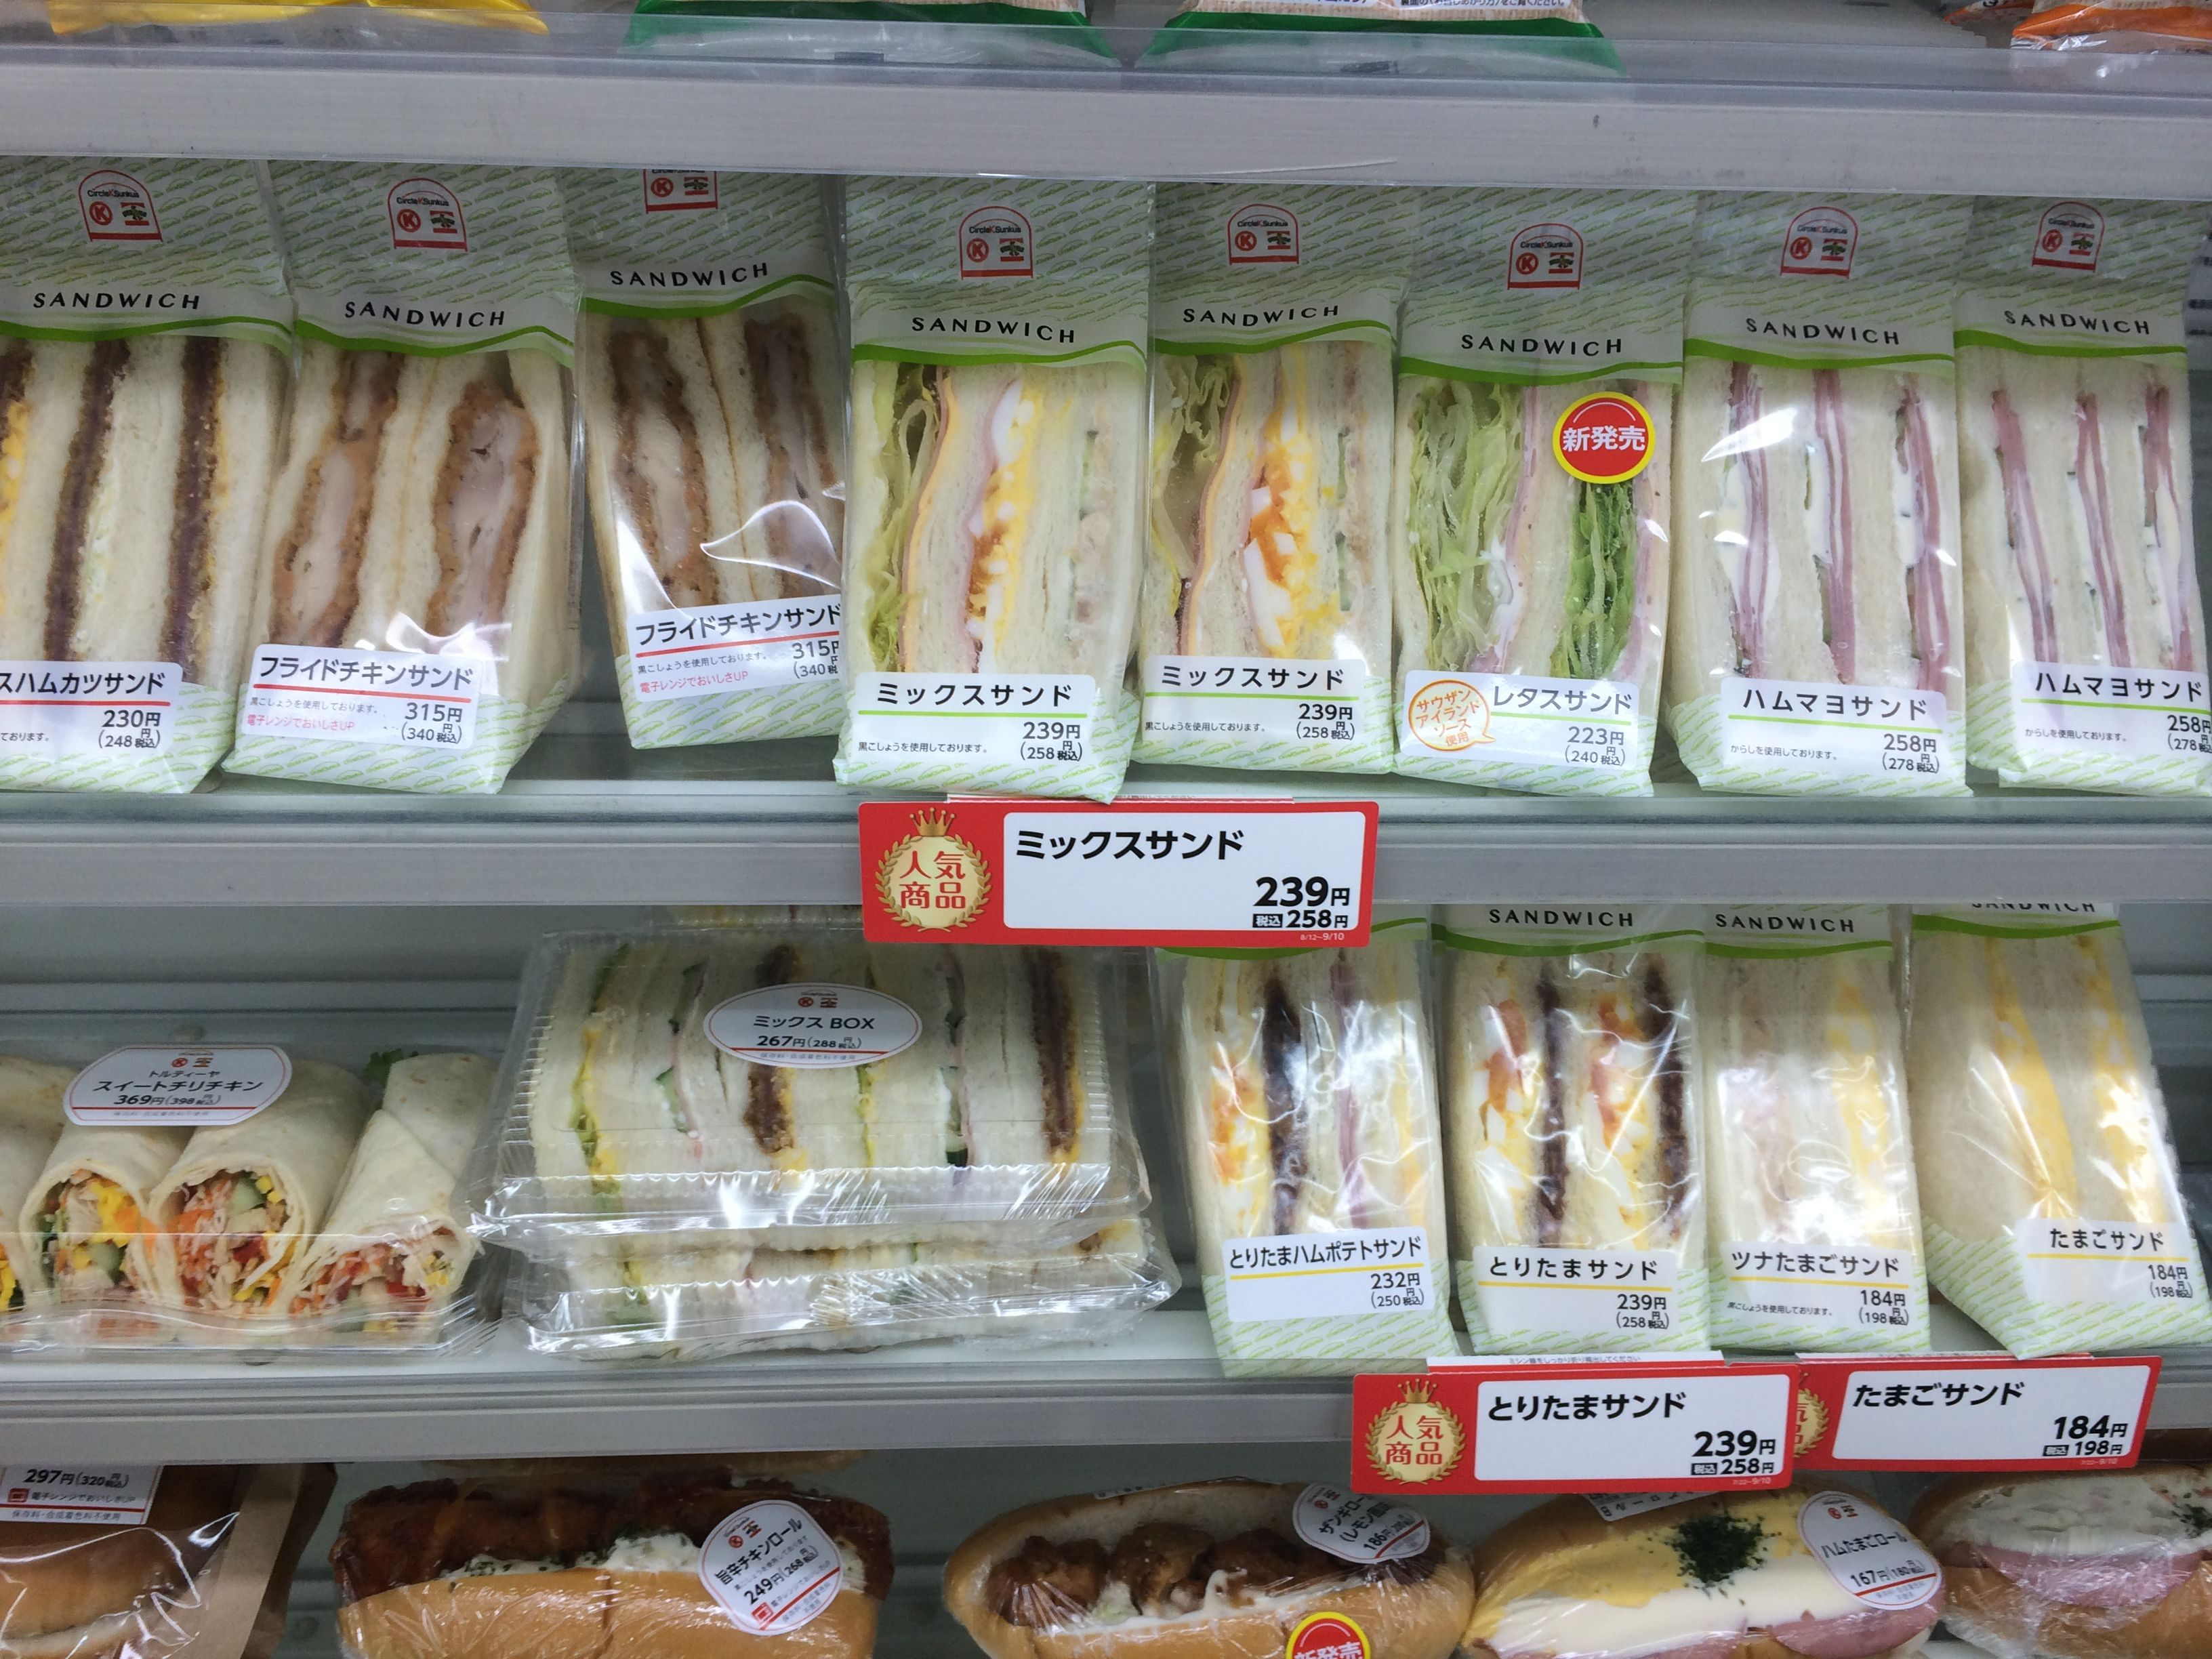 Convenience Convenience Stores Like 7 11 Provide Quick Food For Those Who Want A Snack Or Even Breakfast Or Asian Candy Japanese Sandwich Sandwich Packaging